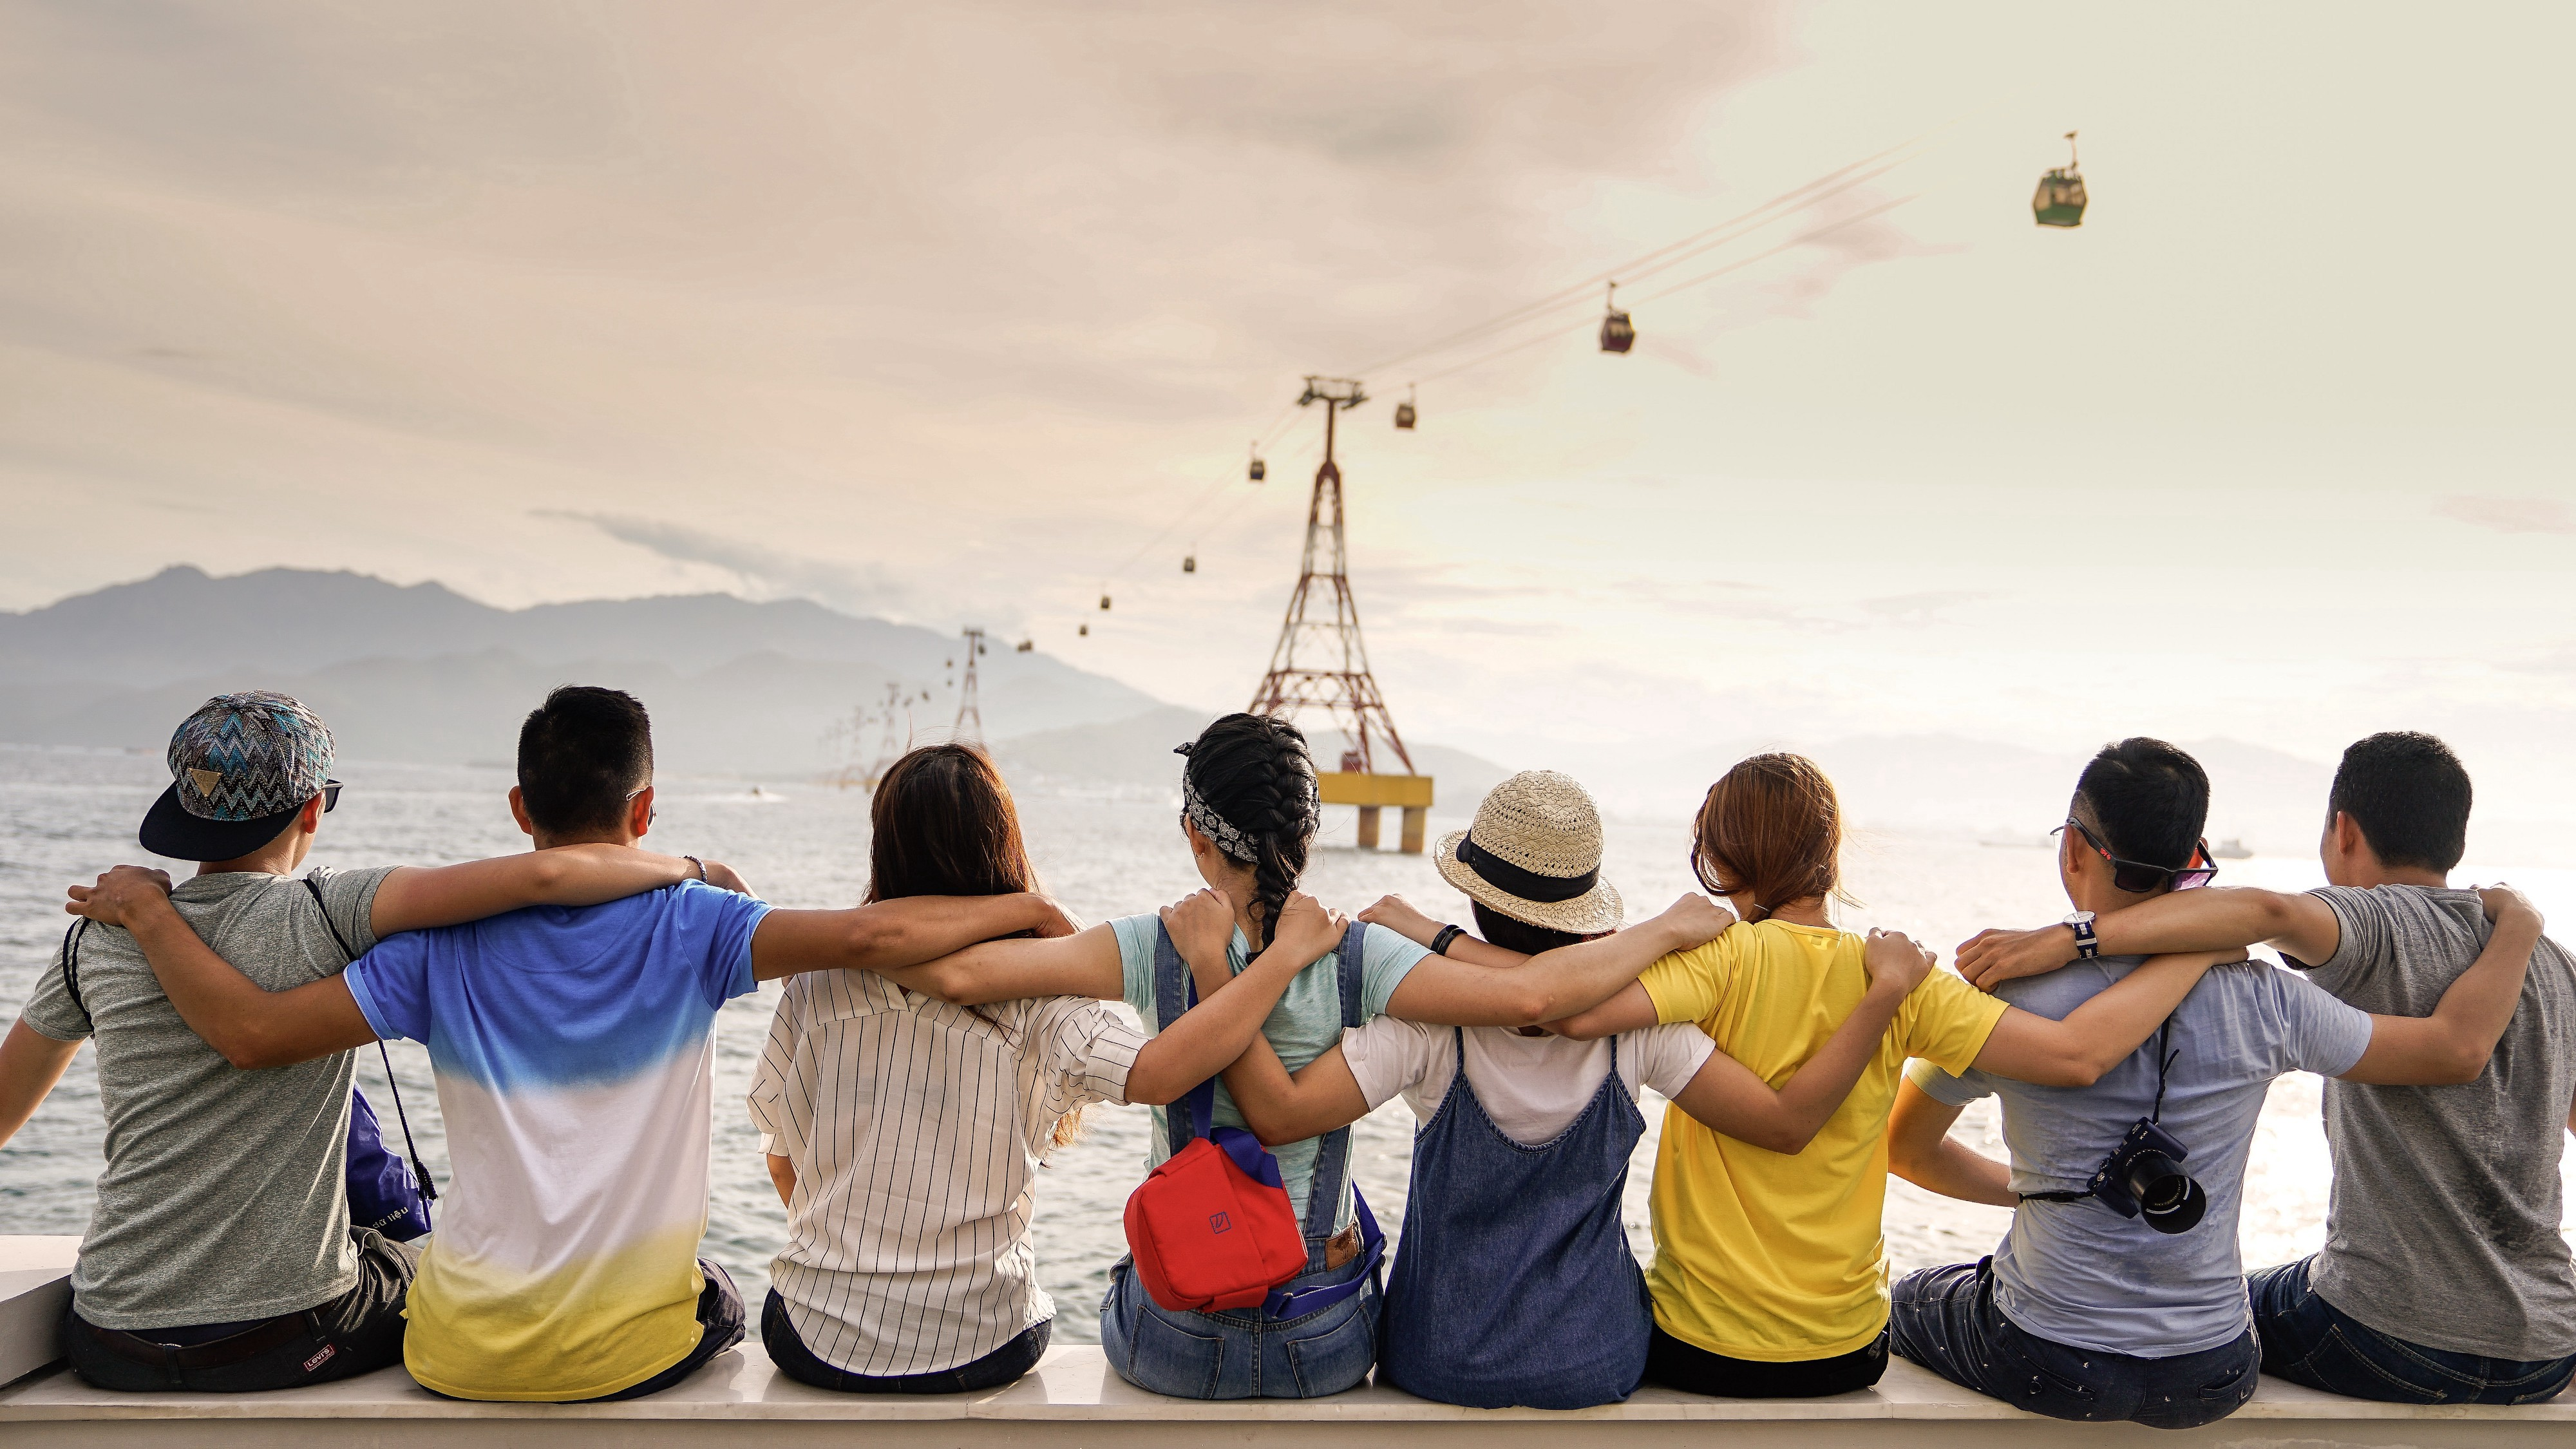 8 friends linking arms overlooking a view